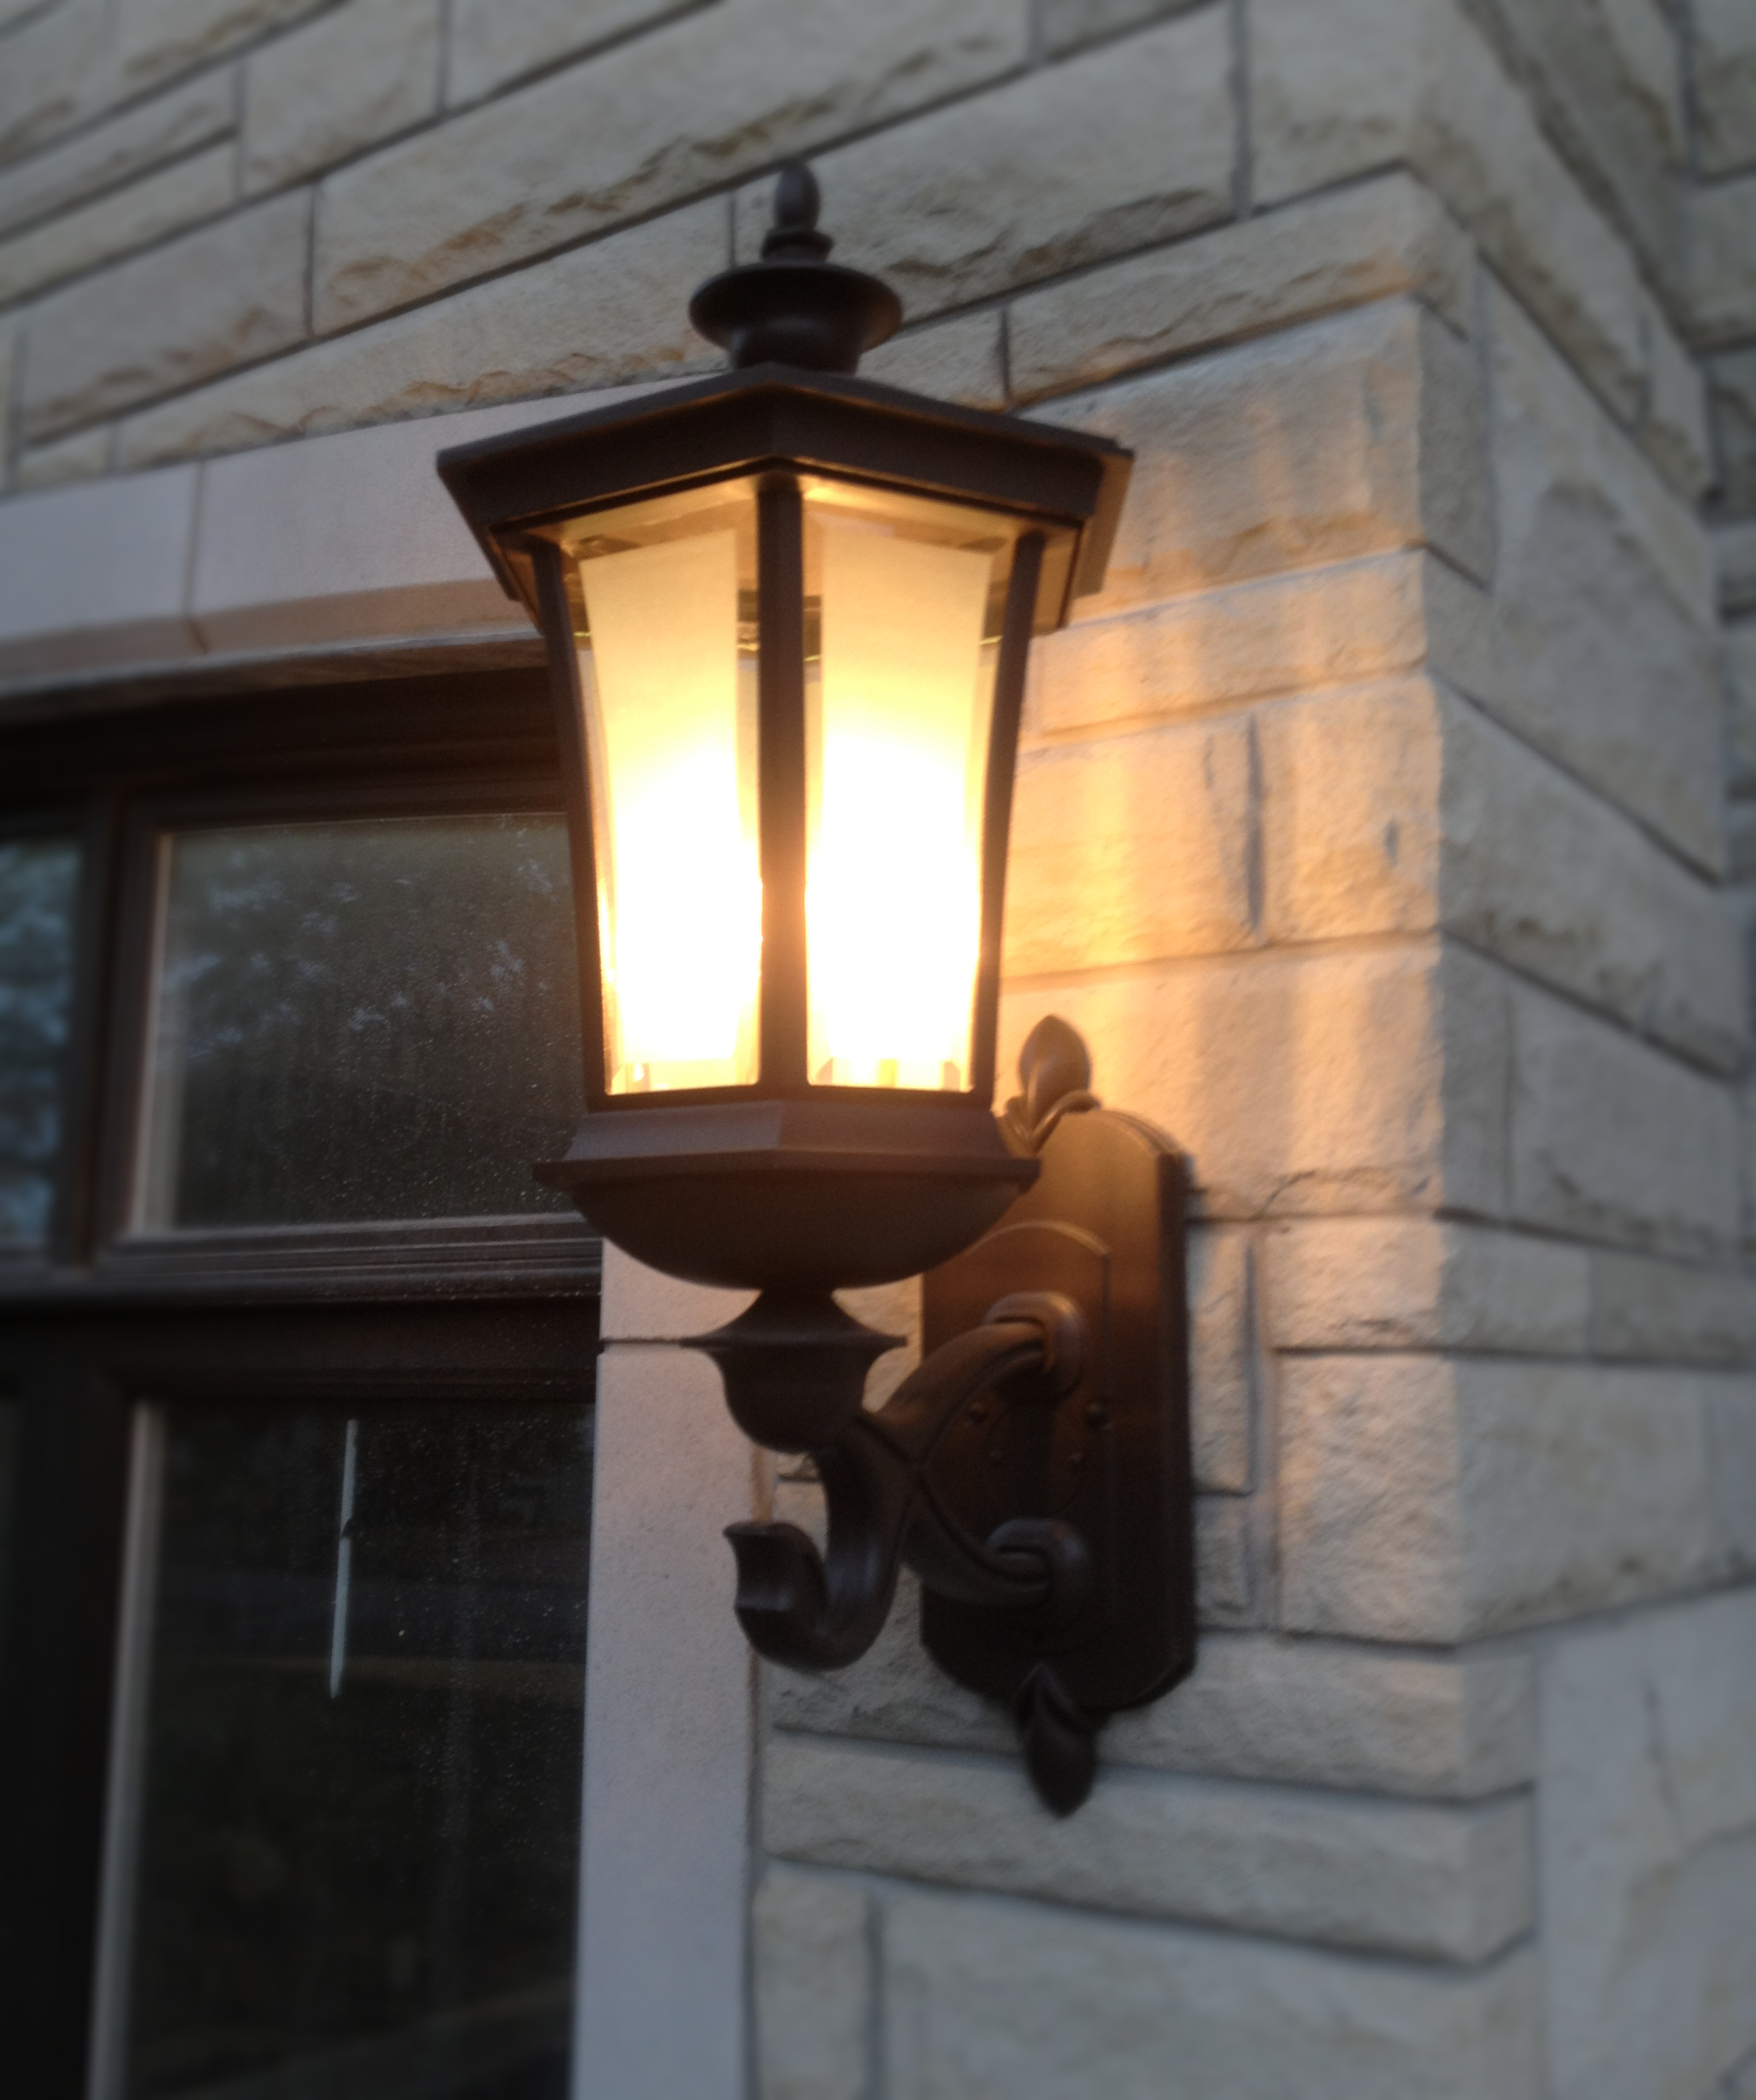 Saikaley-House-exterior-lamp